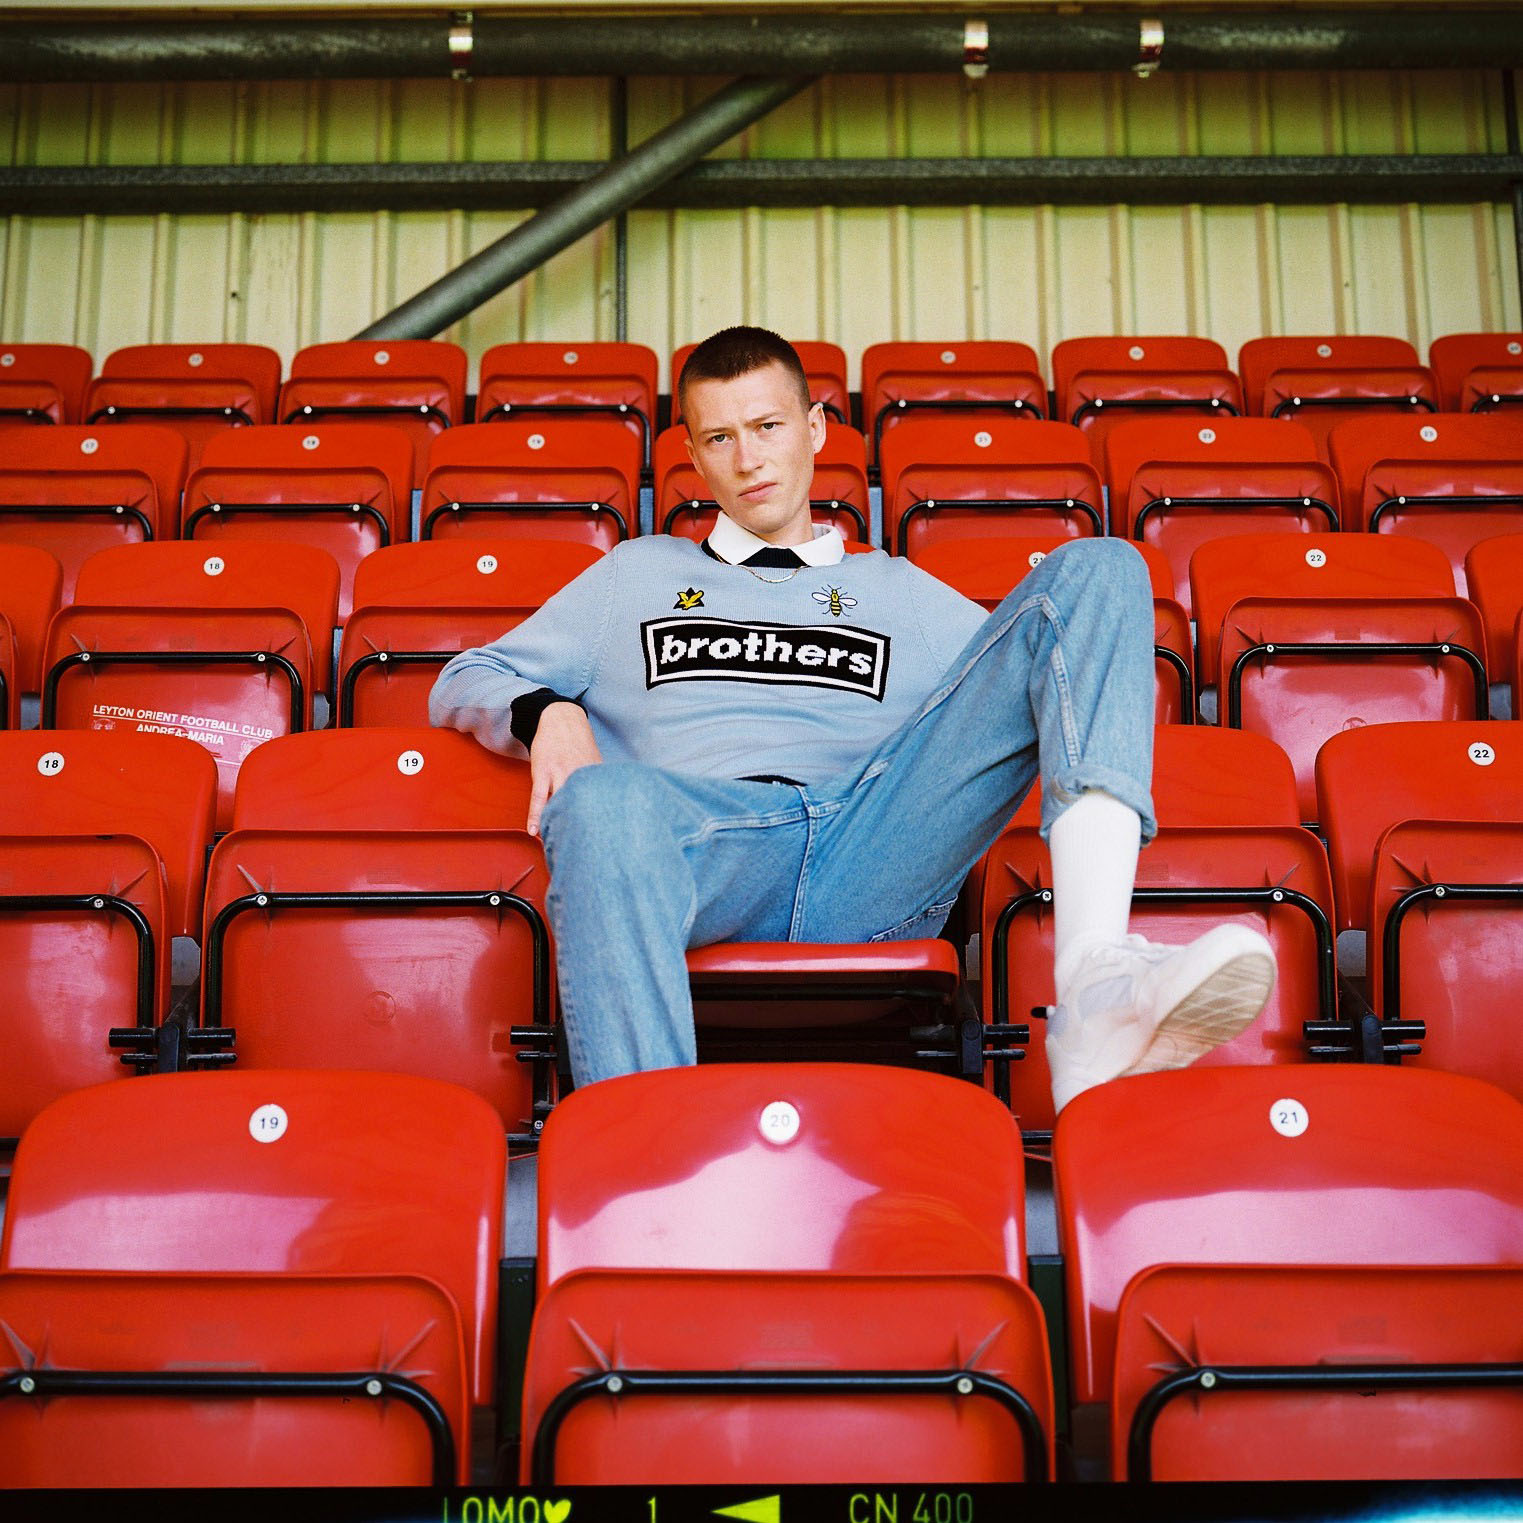 Lad  on red stadium chair by lifestyle photographer Tim Cole